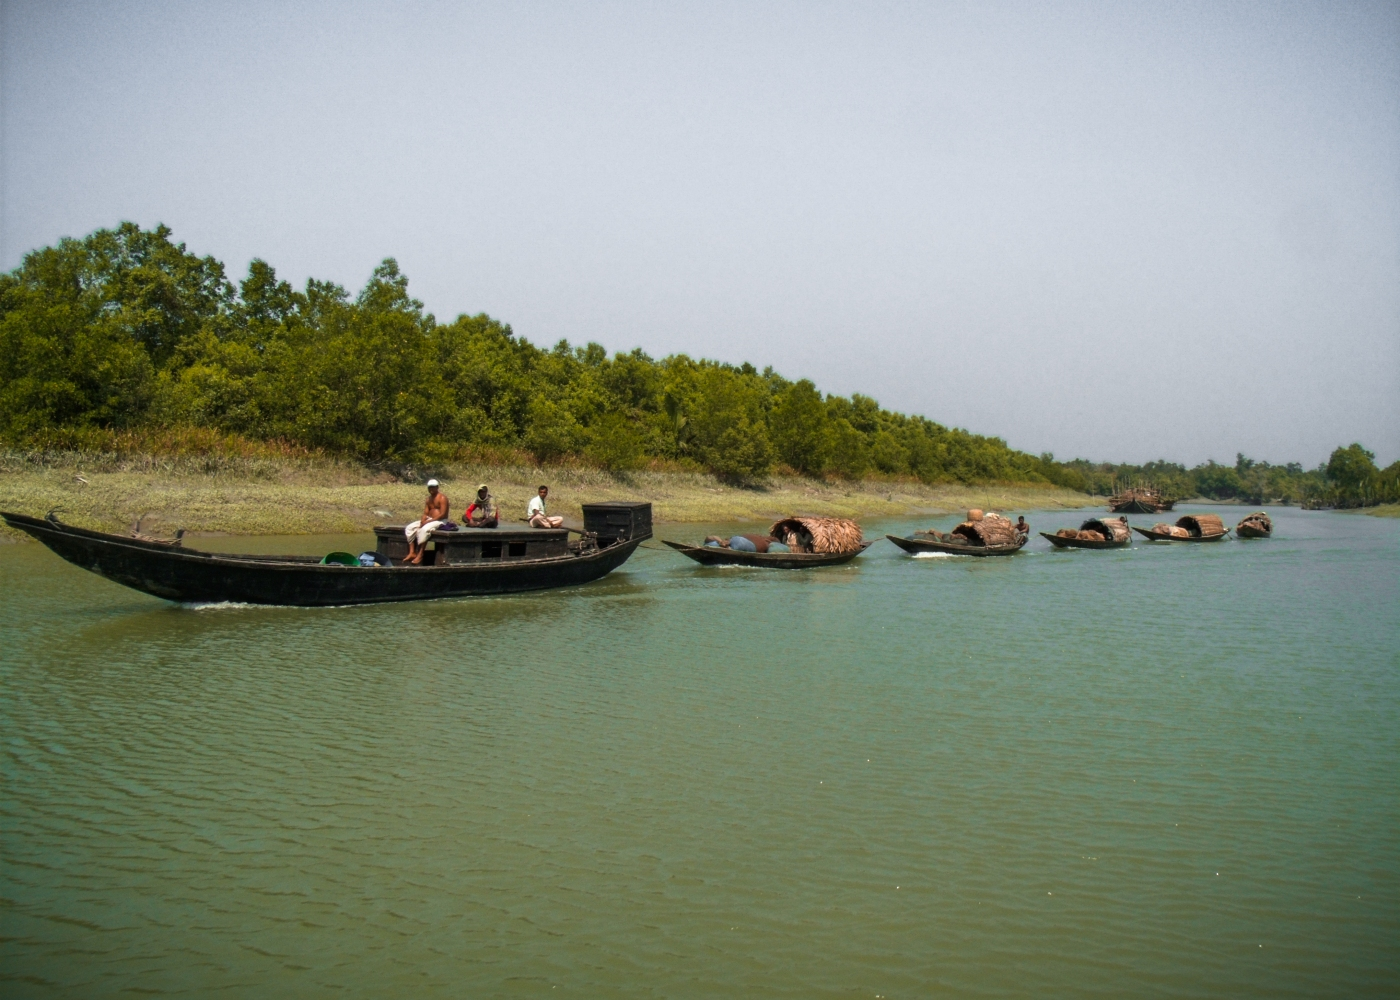 Southwest Bangladesh: Bagarhat, Mongla, and the Sundarbans